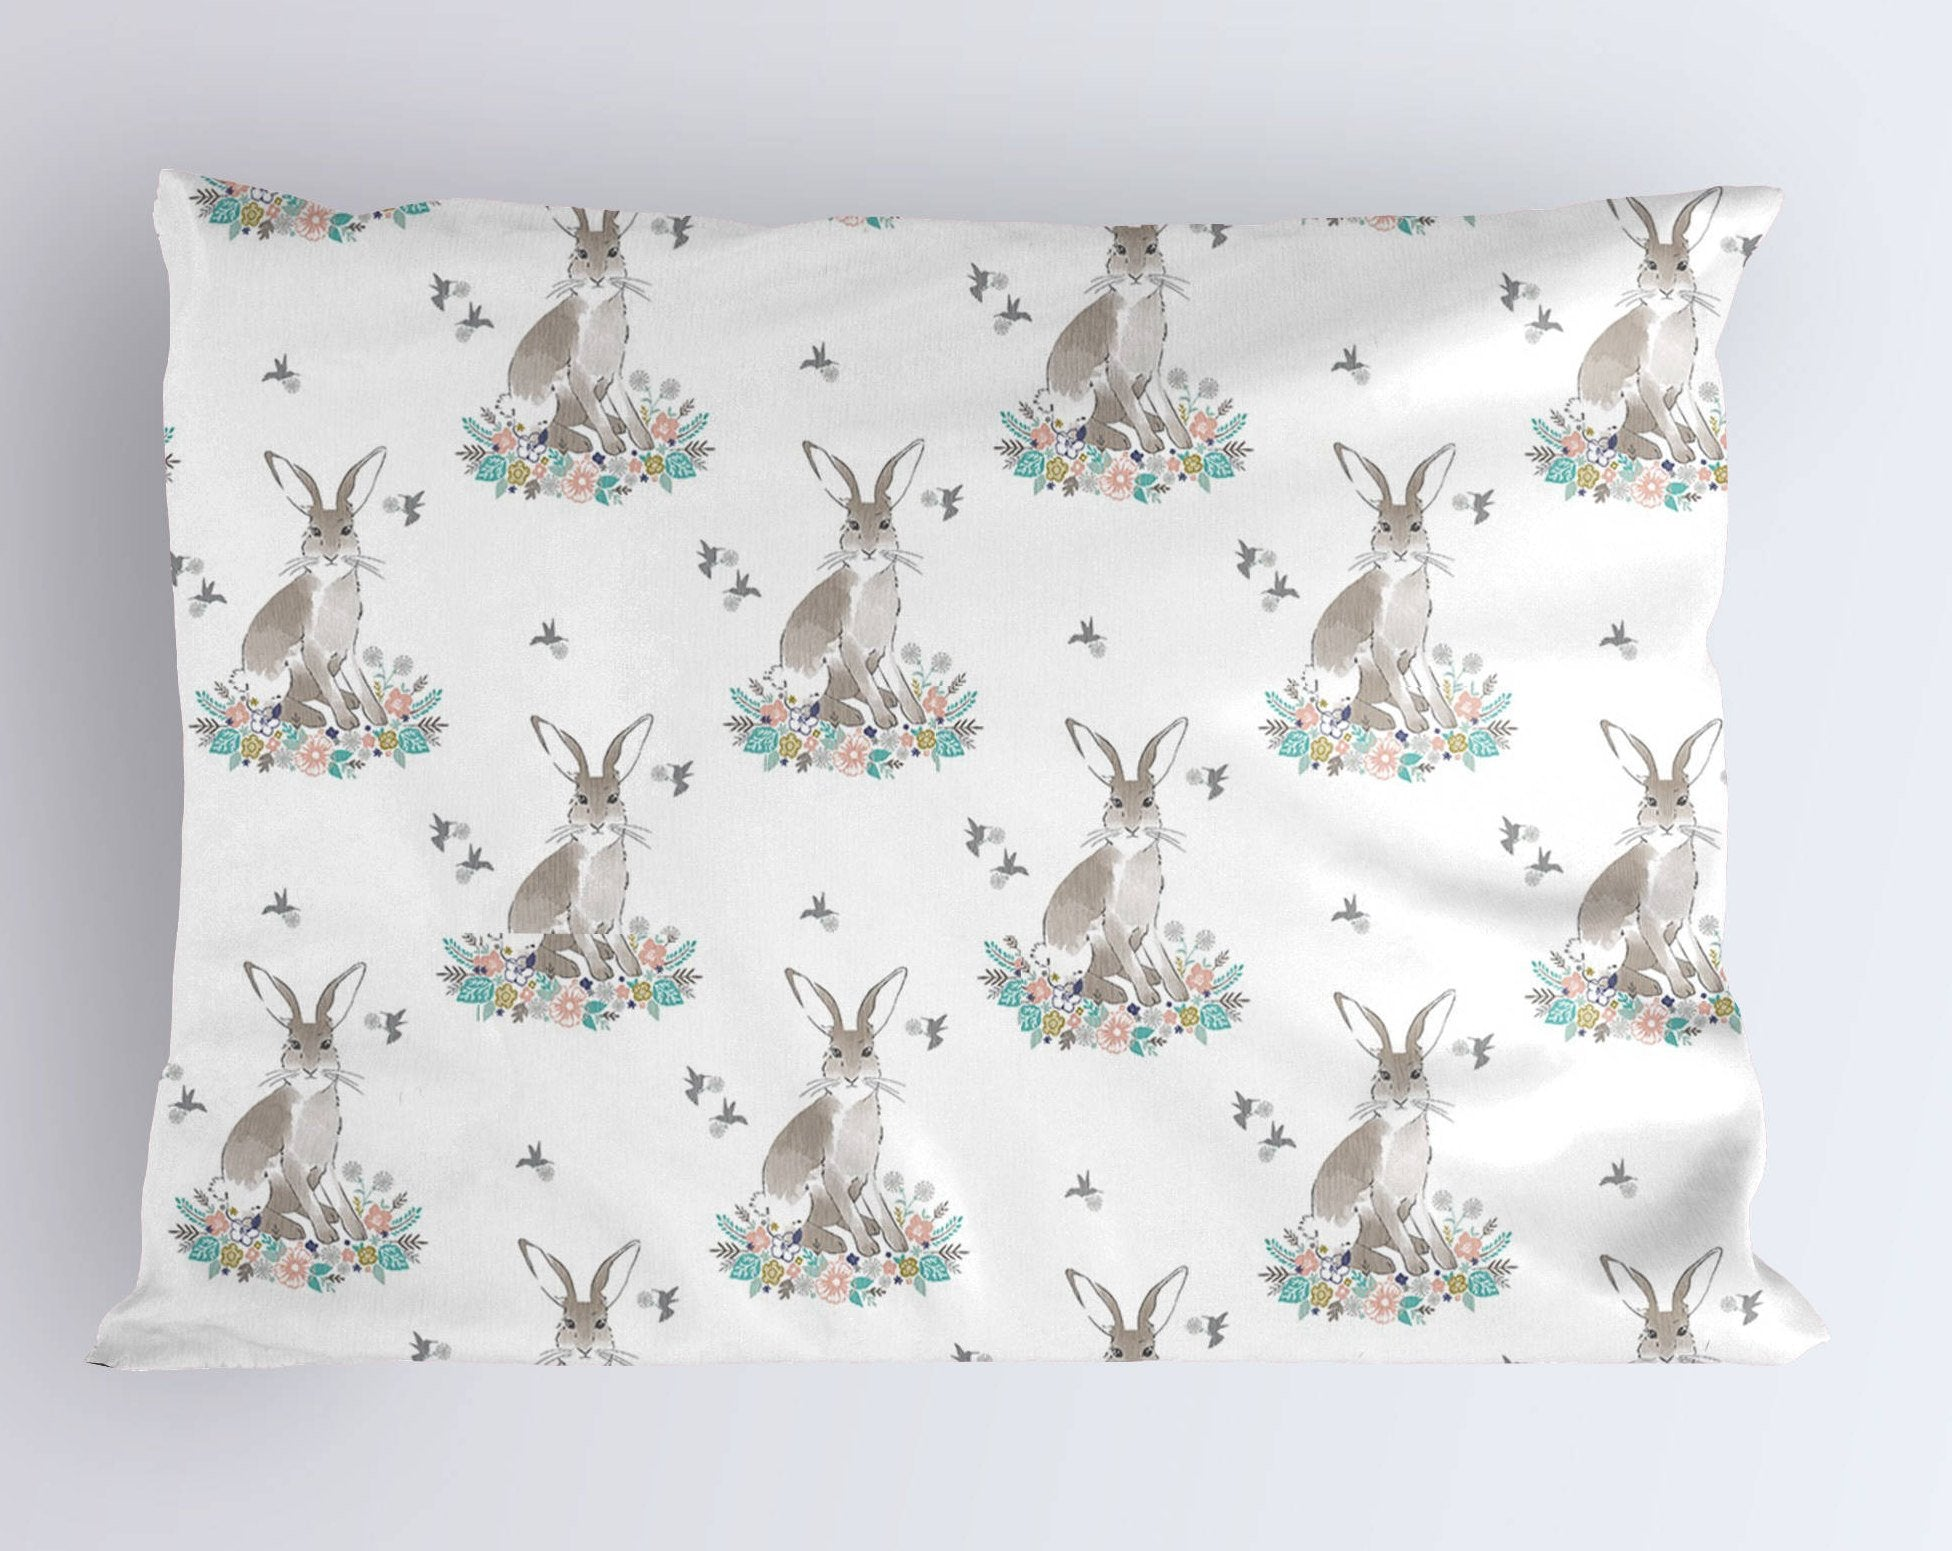 Rabbit Pillow Case - Bunny Pillowcase - Queen Pillow- King Pillowcase- Kids Summer Bedding- Woodland Toddler Pillow Covers - Dorm Decor - Dream Evergreen @DreamEvergreen